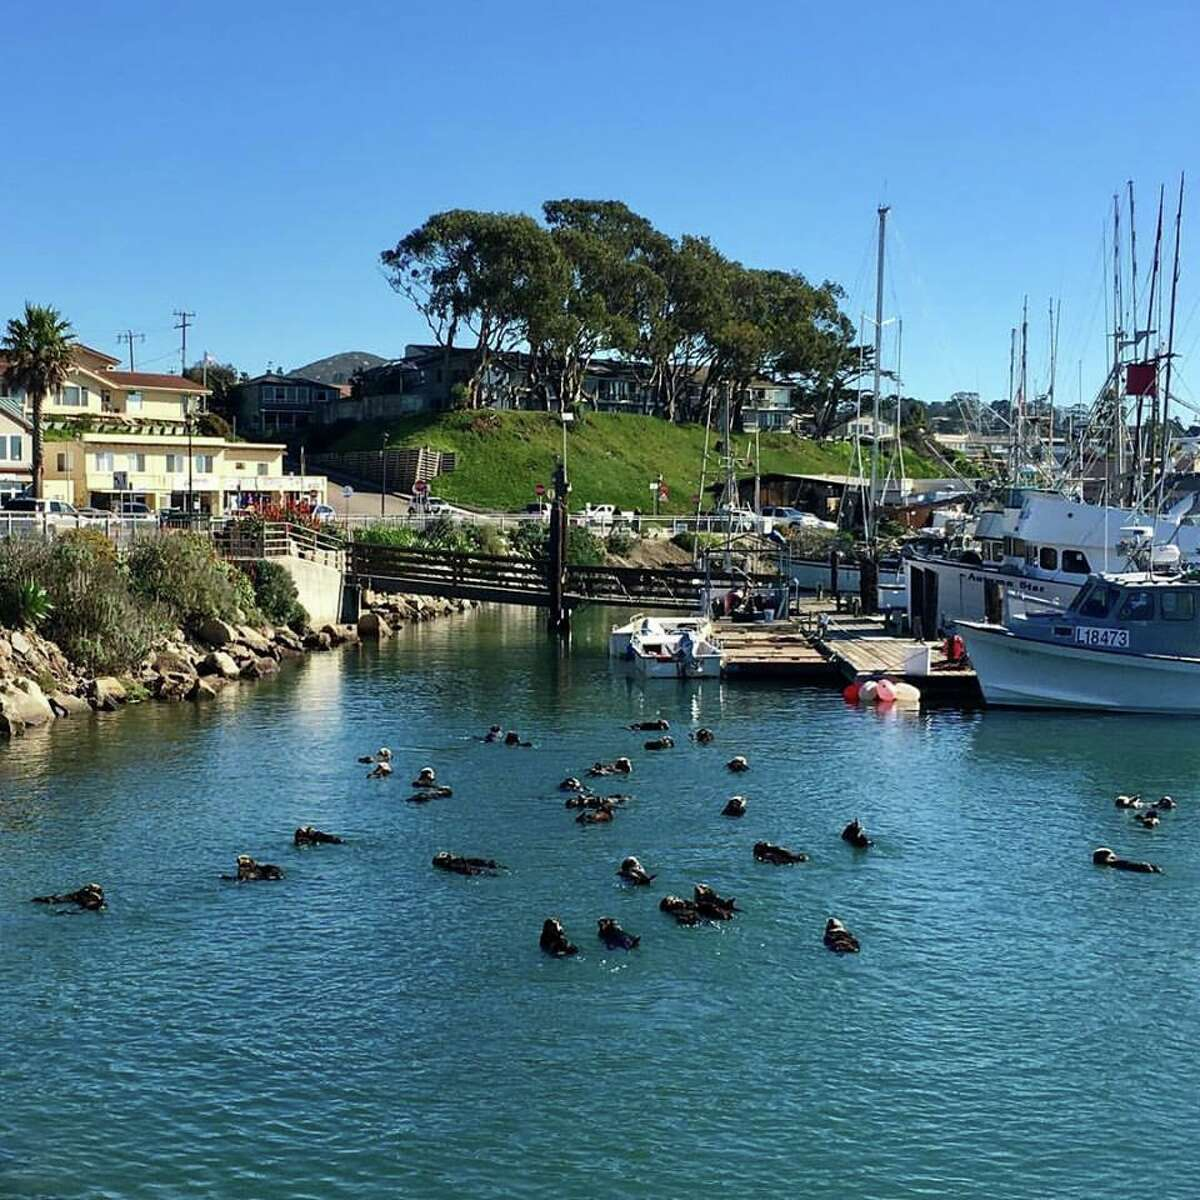 Last year saw a record number of sea otters flock to Morro Bay, with scientists estimating about 30-40 adults and up to 20 pups settled around the embarcadero T-piers in pupping season. The best spot to see the animals, according to Marine Mammal Center veterinarian Cara Field, is the harbor near Morro Rock.